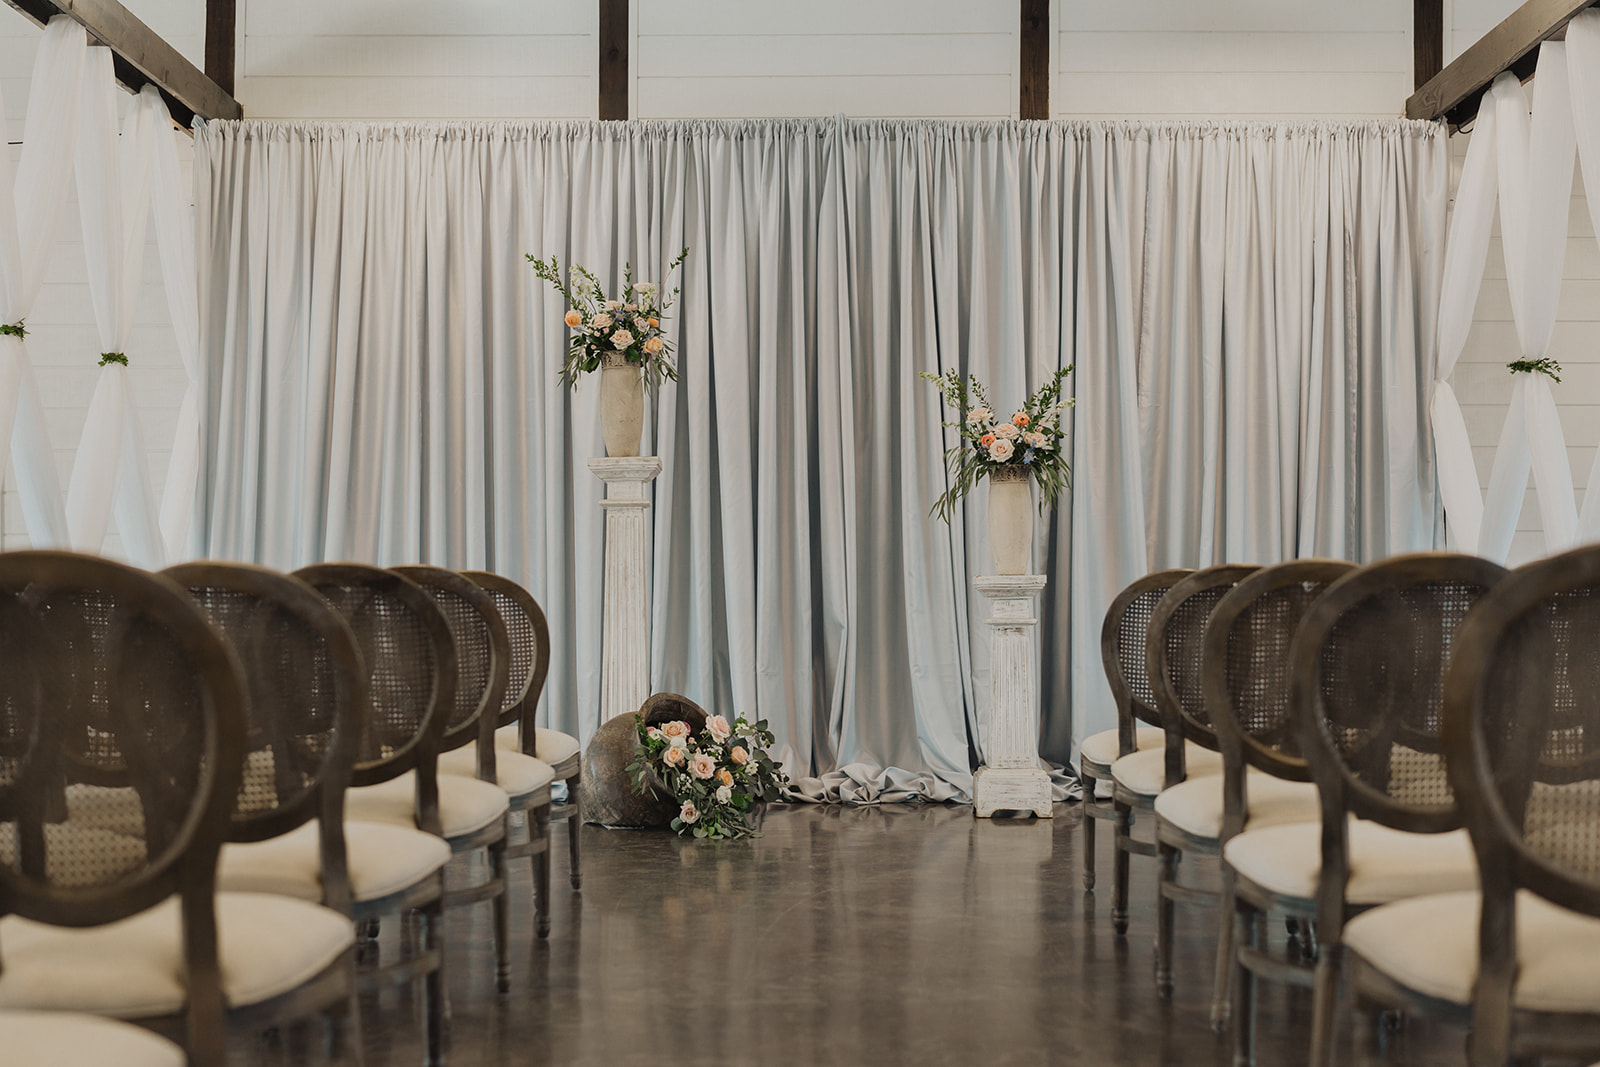 Indoor Ceremony Tulsa Wedding Venue Dream Point Ranch 0.jpg